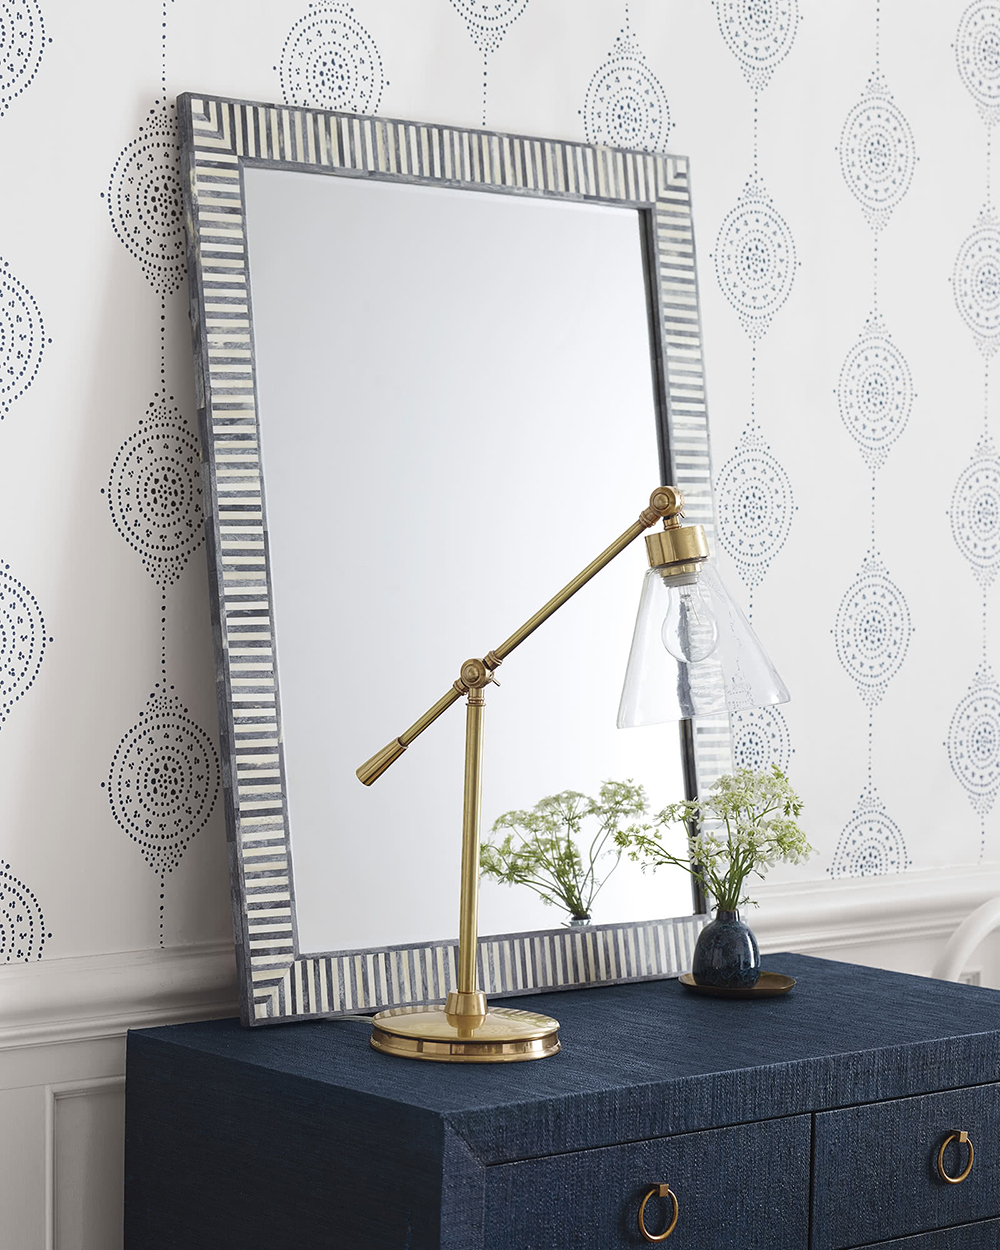 Friday Finds : Top Home Decor Finds This Week - roomfortuesday.com